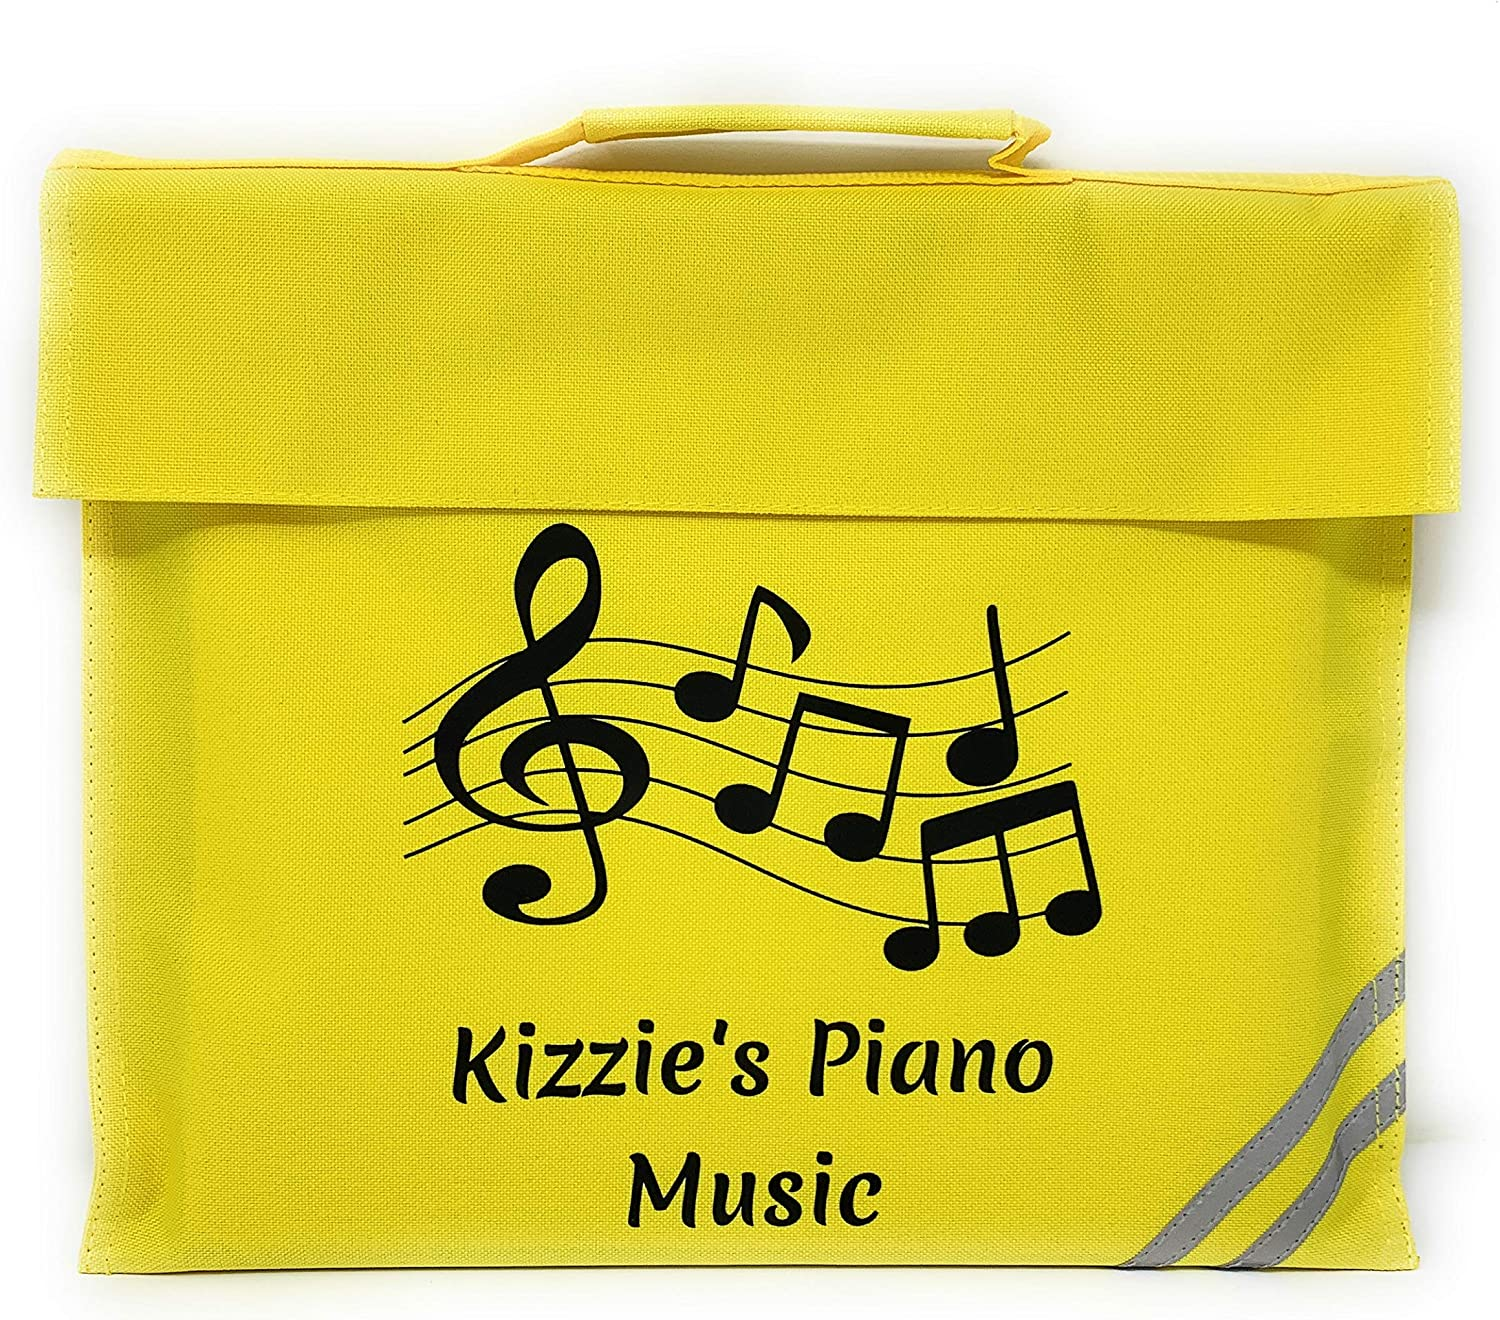 PERSONALISED THEATRE /& ARTS MUSIC NOTES WITH TREBLE CLEF DESIGN SCHOOL BOOK BAG DOCUMENT HOLDER IN BLACK Black